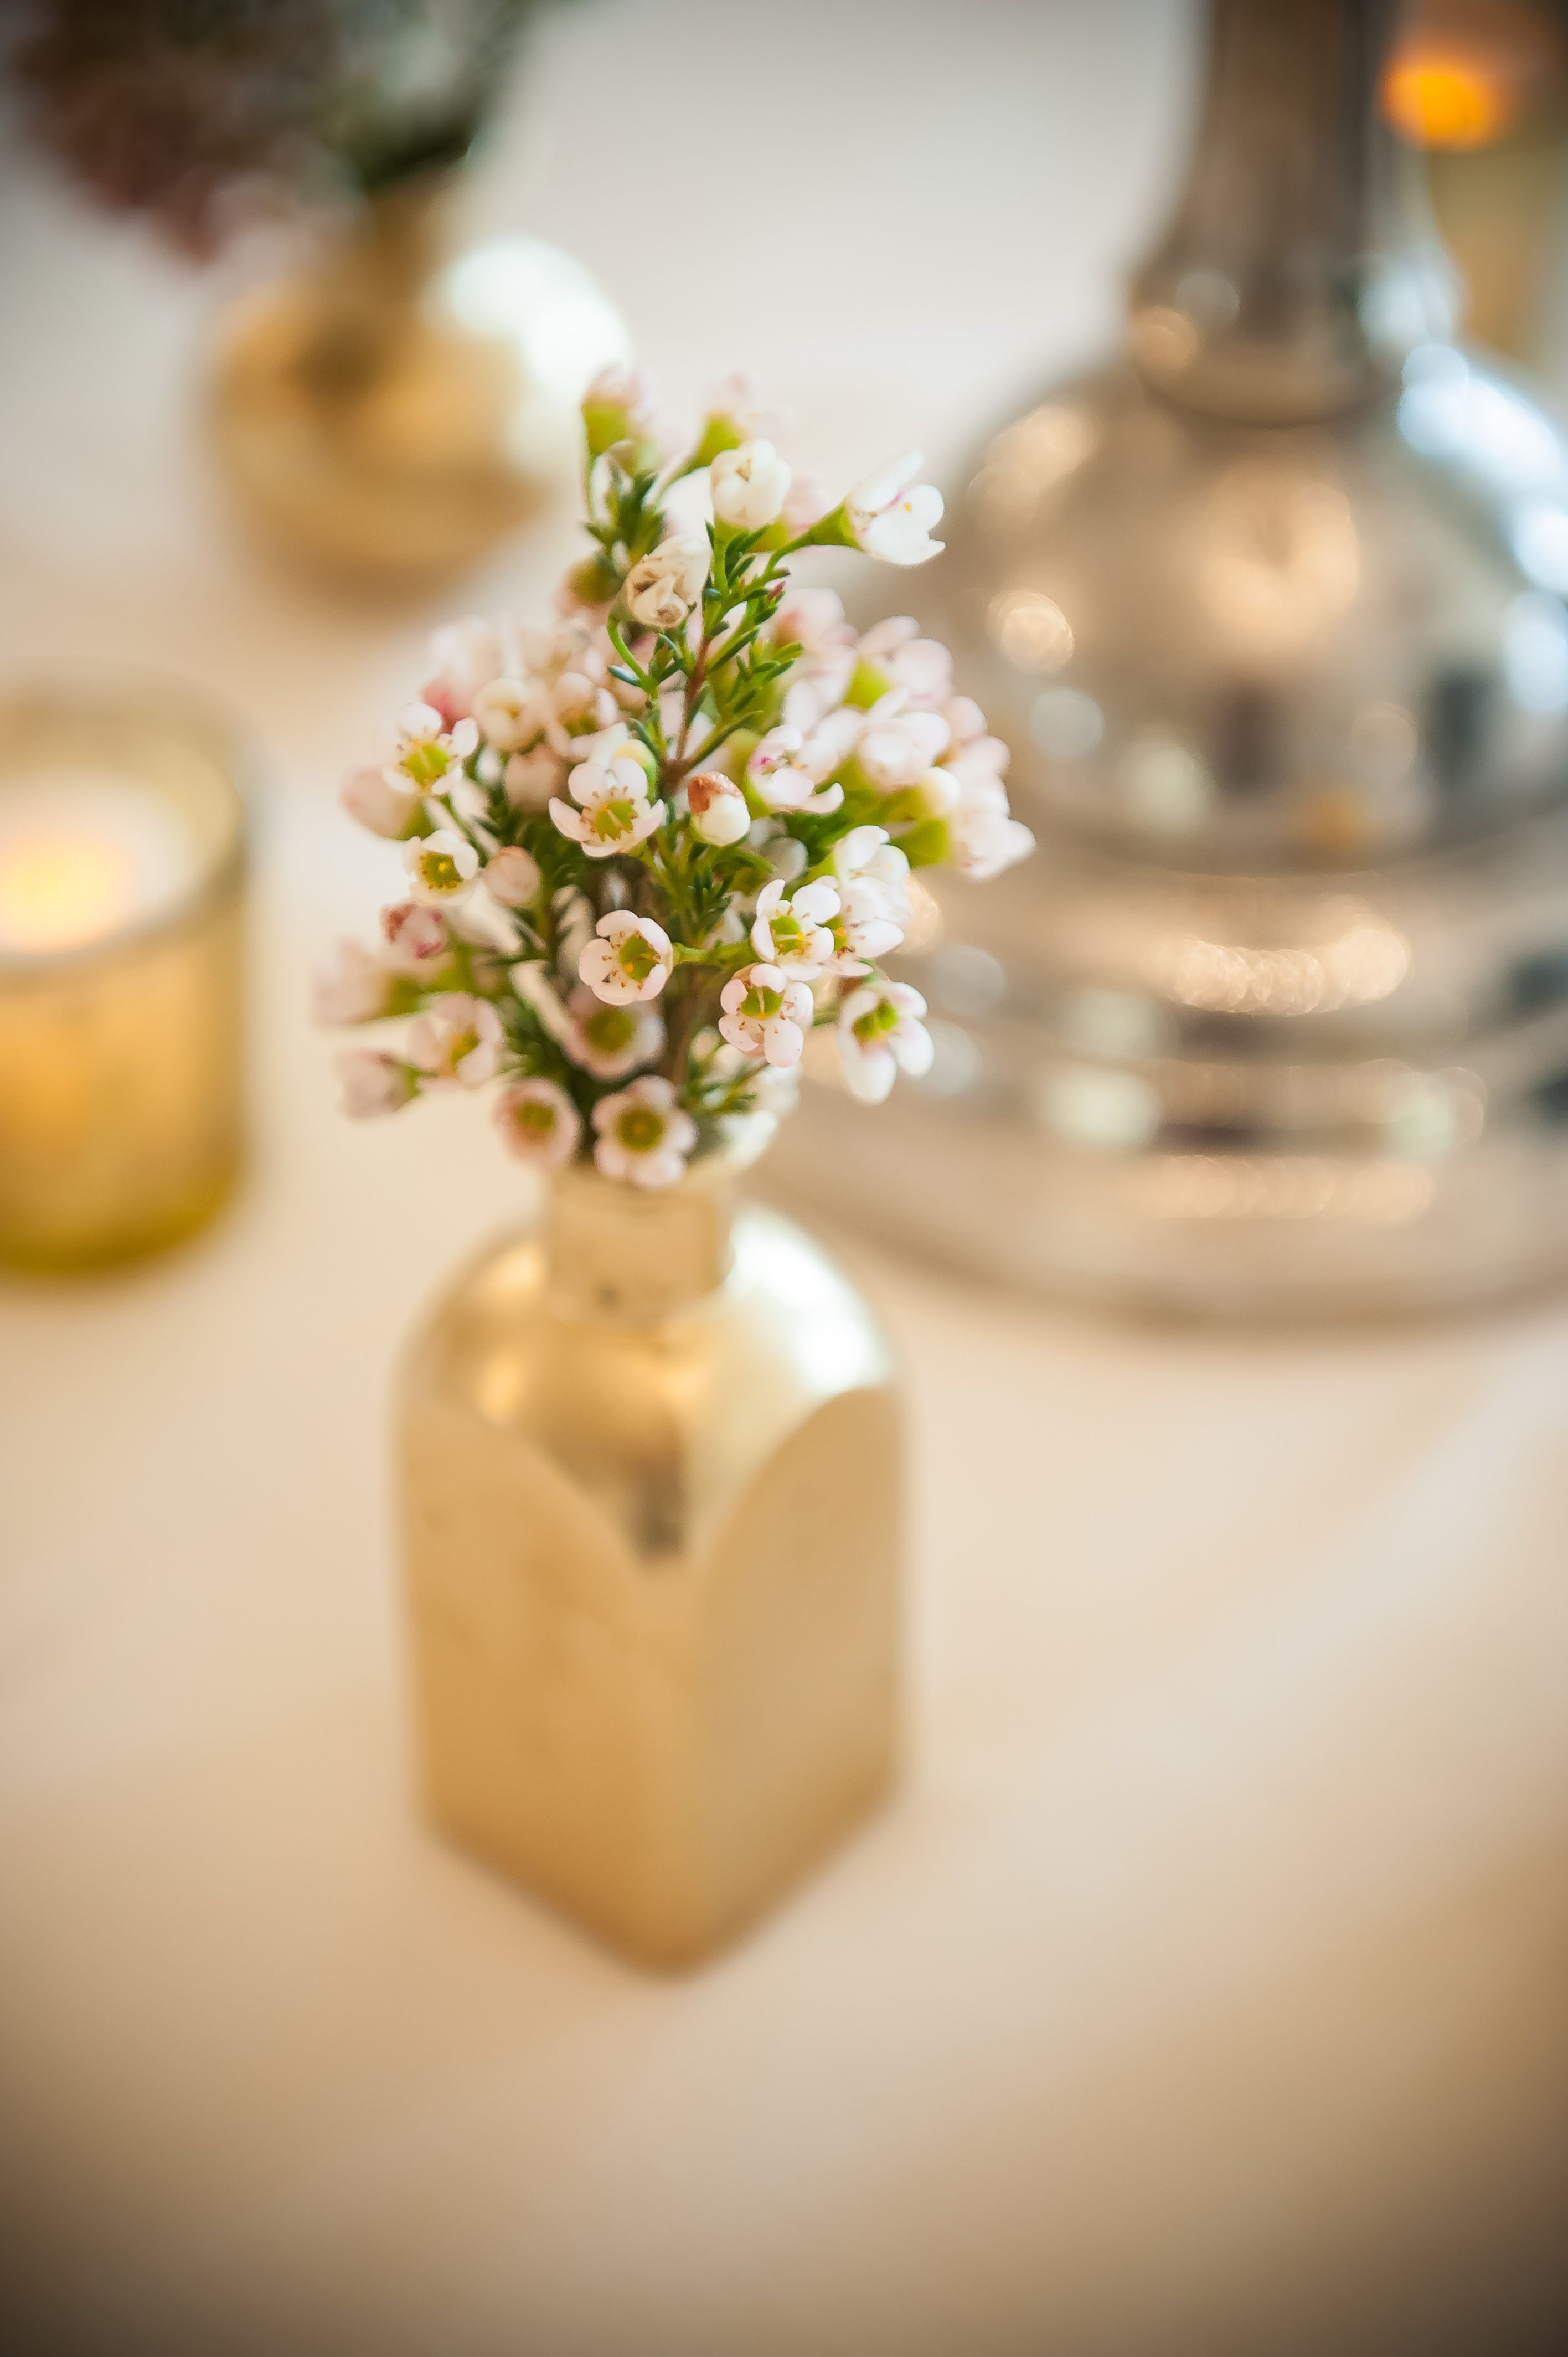 solid brass vase of small gold vase photos h vases small clear 3200 24 cafe collection regarding small gold vase photograph how about little gold bud vases with white waxflowers for the of